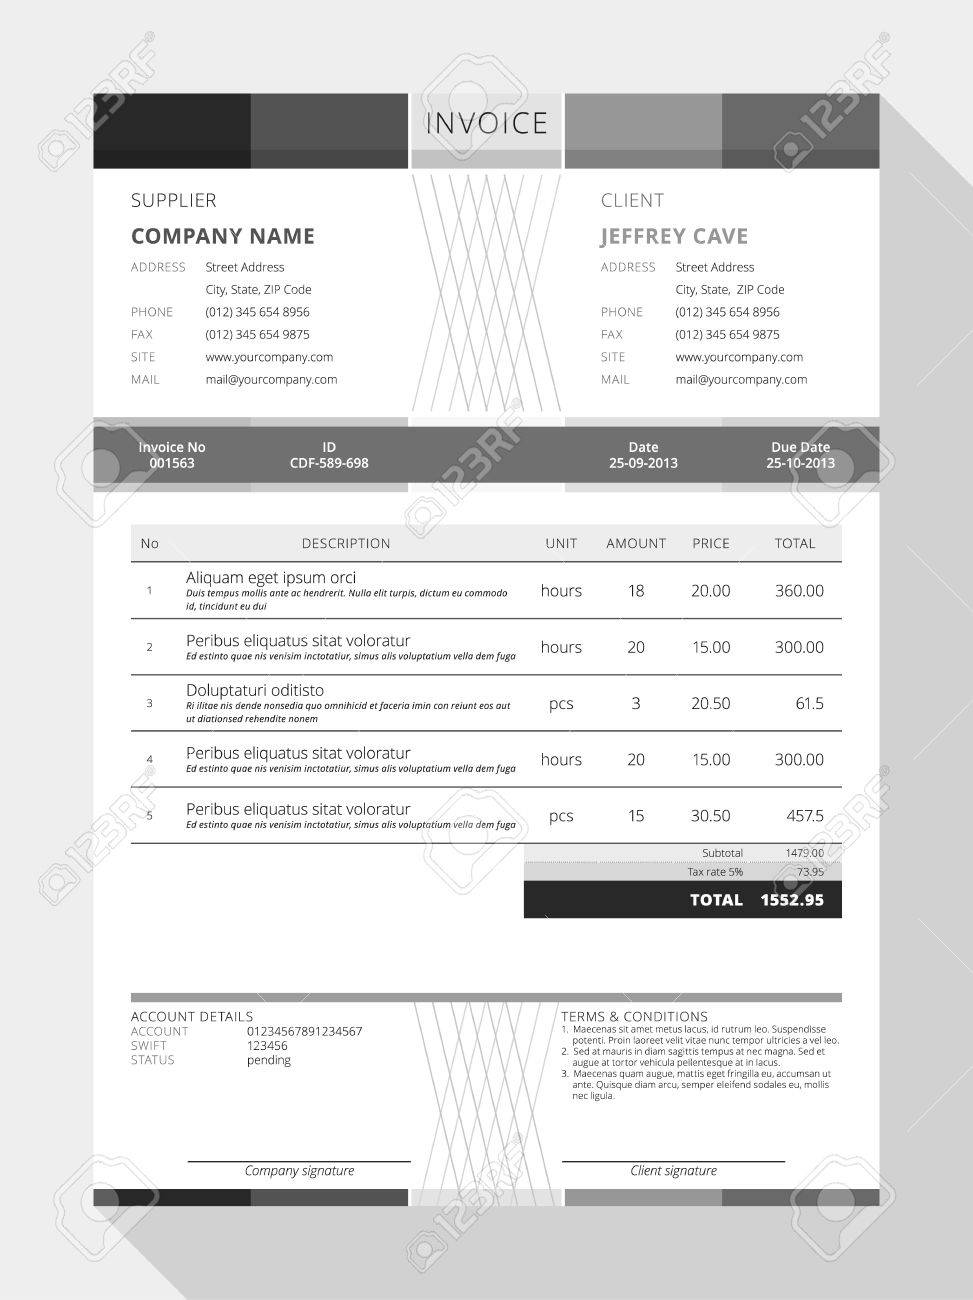 Imagerackus  Personable Design An Invoice  Professional Graphic Design Invoice  With Marvelous Vector Customizable Invoice Form Template Design Vector   Design An Invoice With Alluring Best Receipt Software Also Receipt Of This Letter In Addition Cash Receipts Book And Money Receipt Format As Well As Room Rental Receipt Additionally Receipt Codes From Happytomco With Imagerackus  Marvelous Design An Invoice  Professional Graphic Design Invoice  With Alluring Vector Customizable Invoice Form Template Design Vector   Design An Invoice And Personable Best Receipt Software Also Receipt Of This Letter In Addition Cash Receipts Book From Happytomco